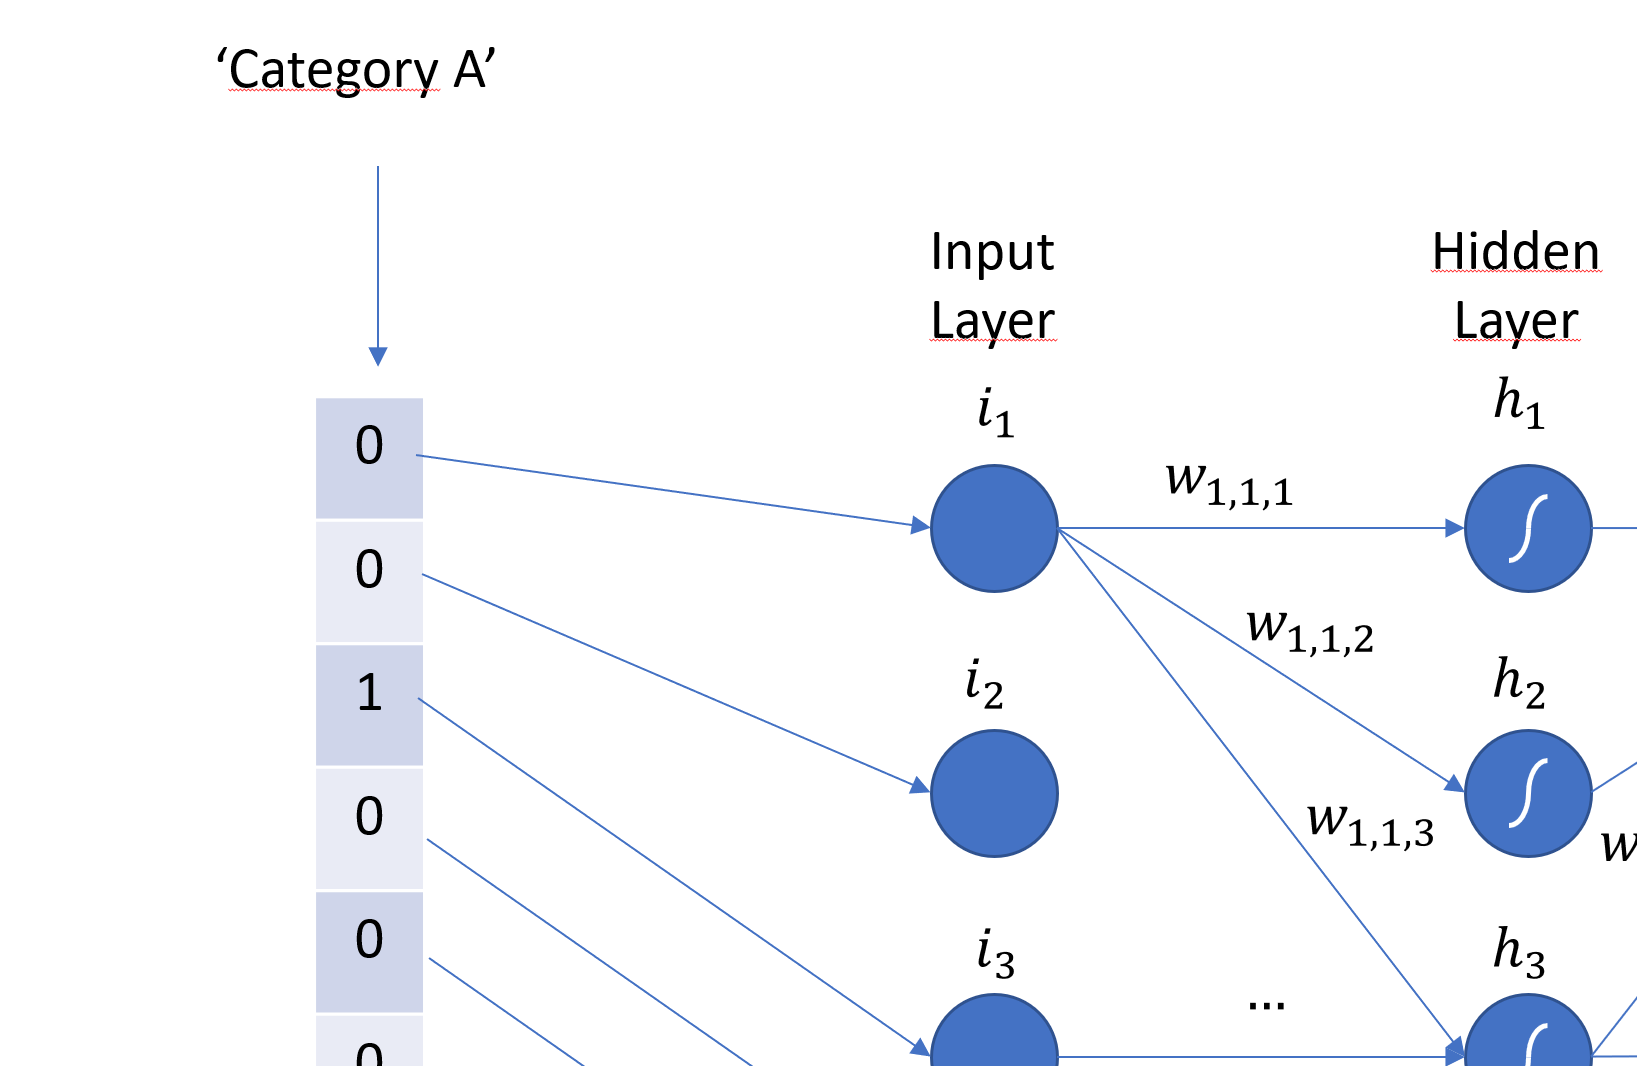 Categorical data input to multilayer perceptrons - a quick discussion